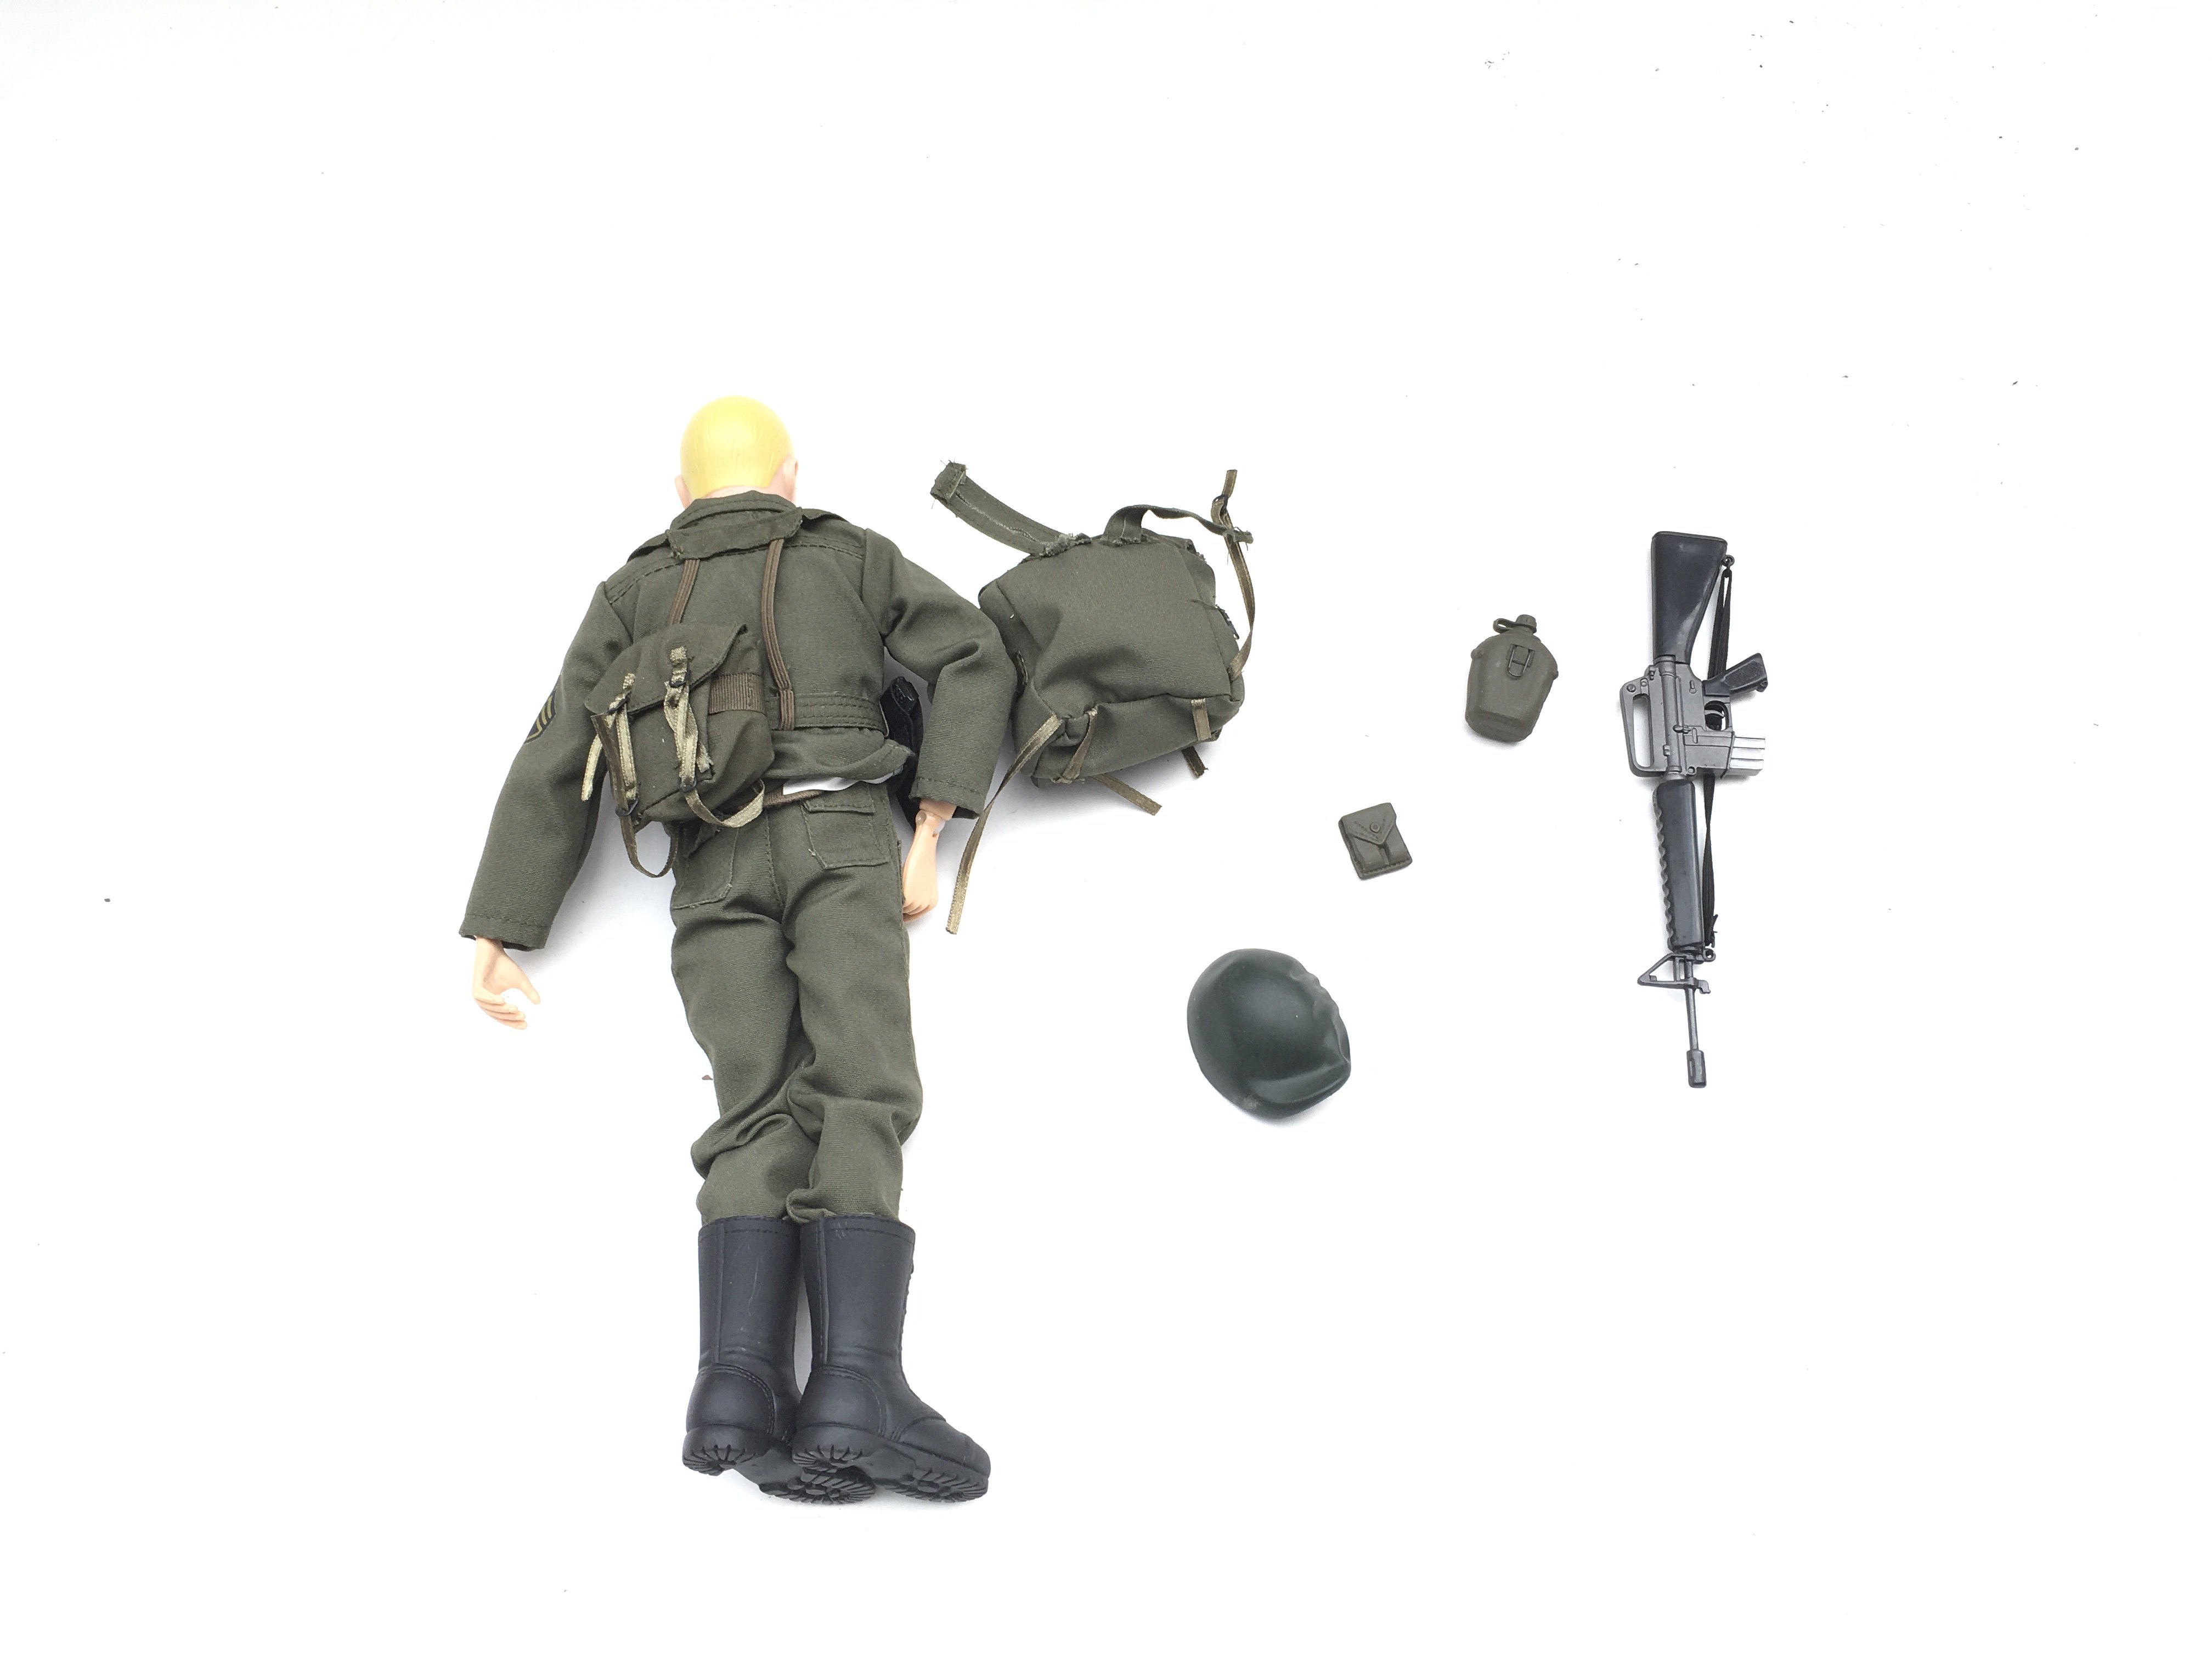 Action figure with accessories. - Image 2 of 2